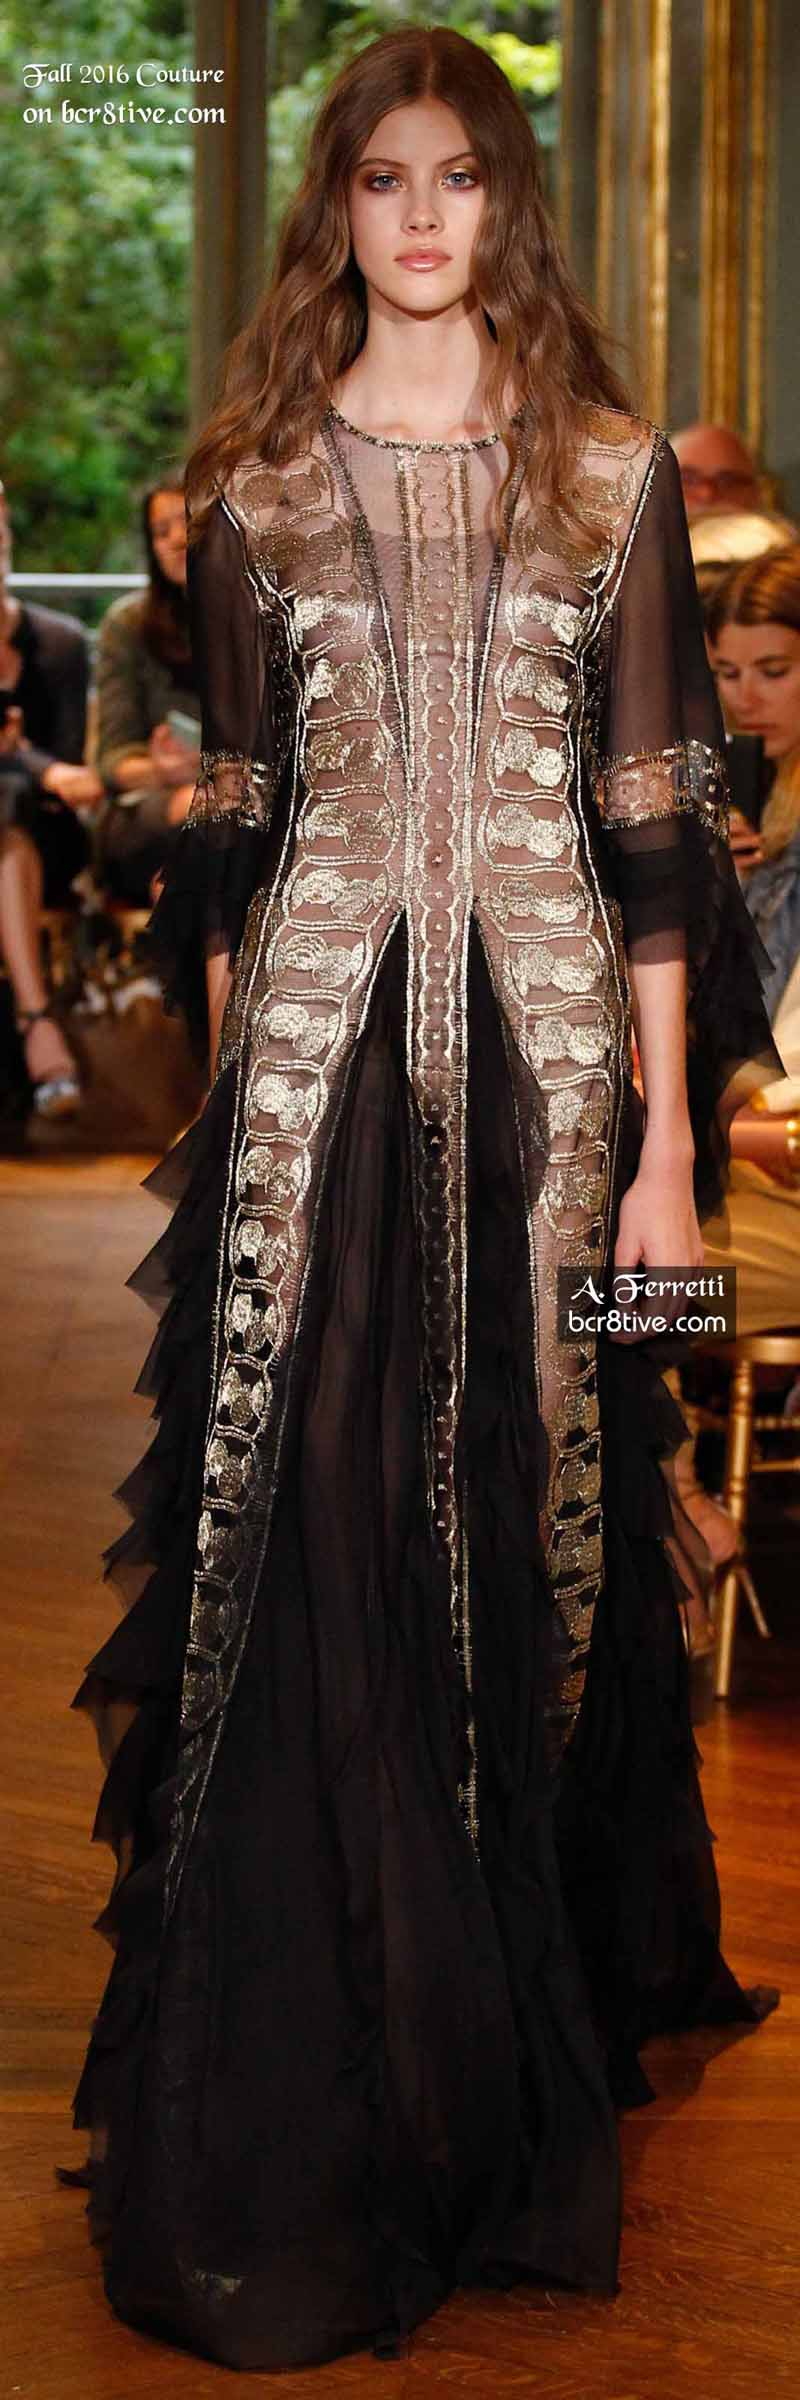 Alberta Ferretti - The Best Fall 2016 Haute Couture Fashion